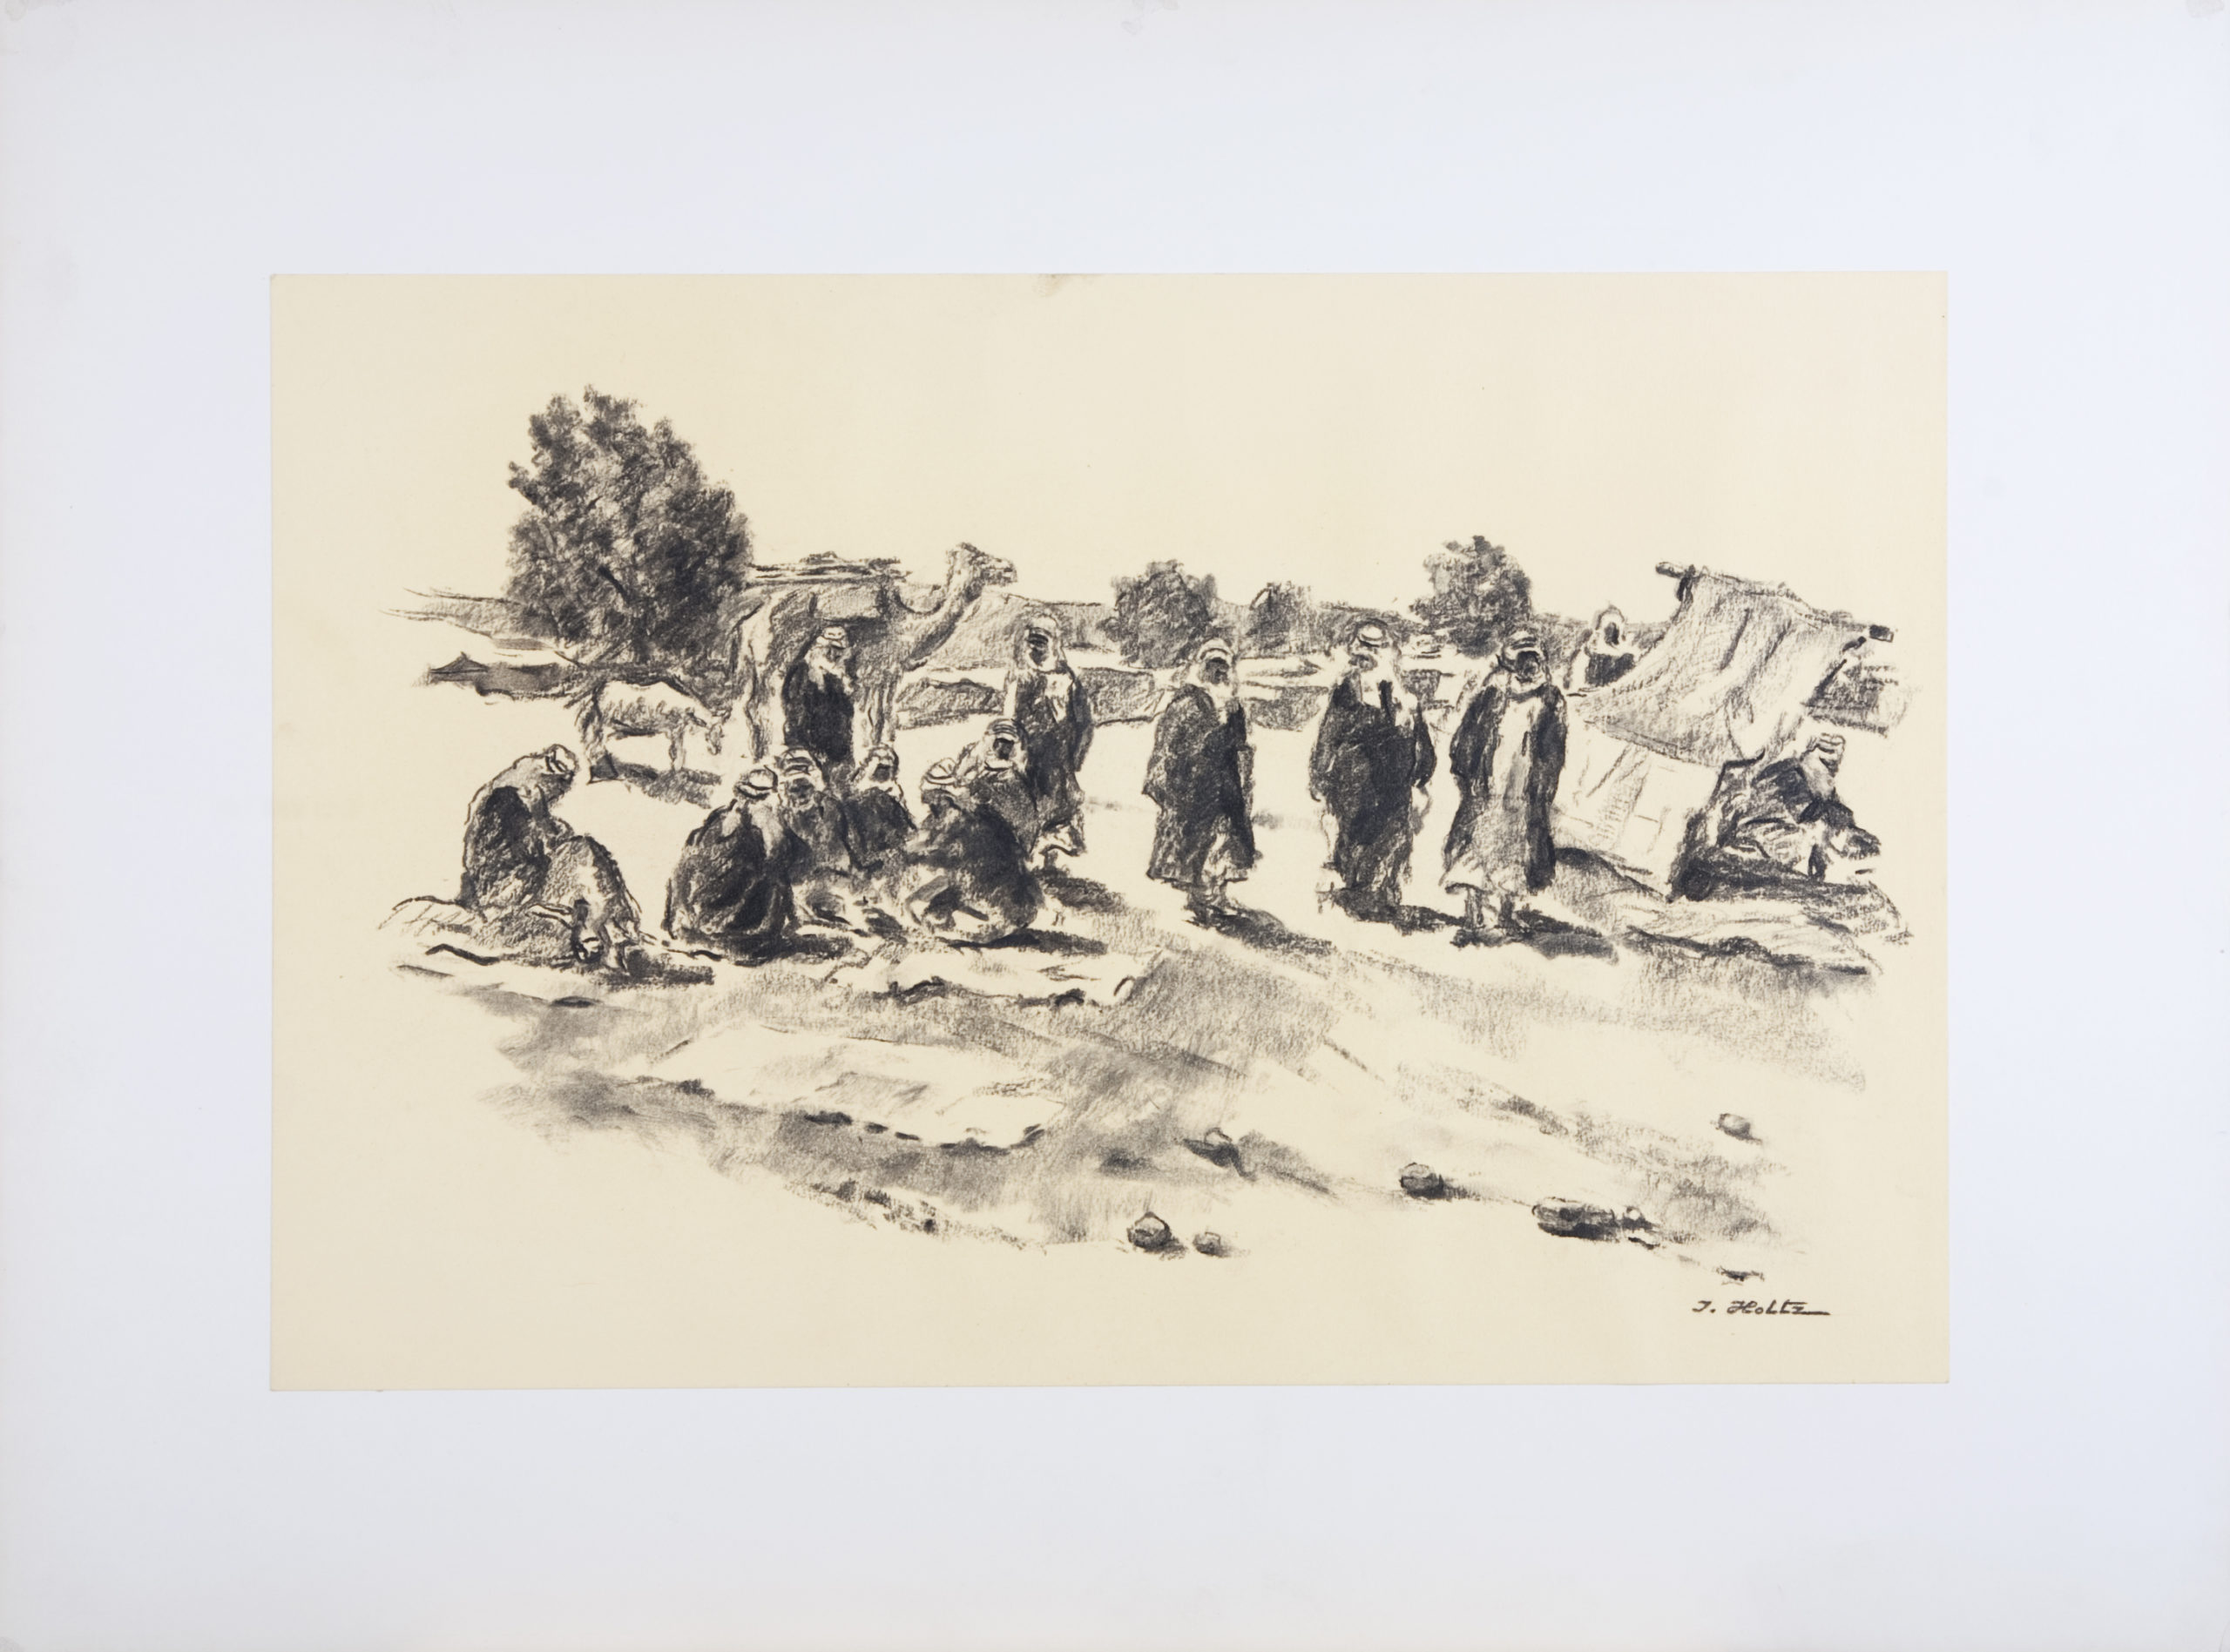 220 Bedouins 1959 - Charcoal - 18 x 12 - No Frame